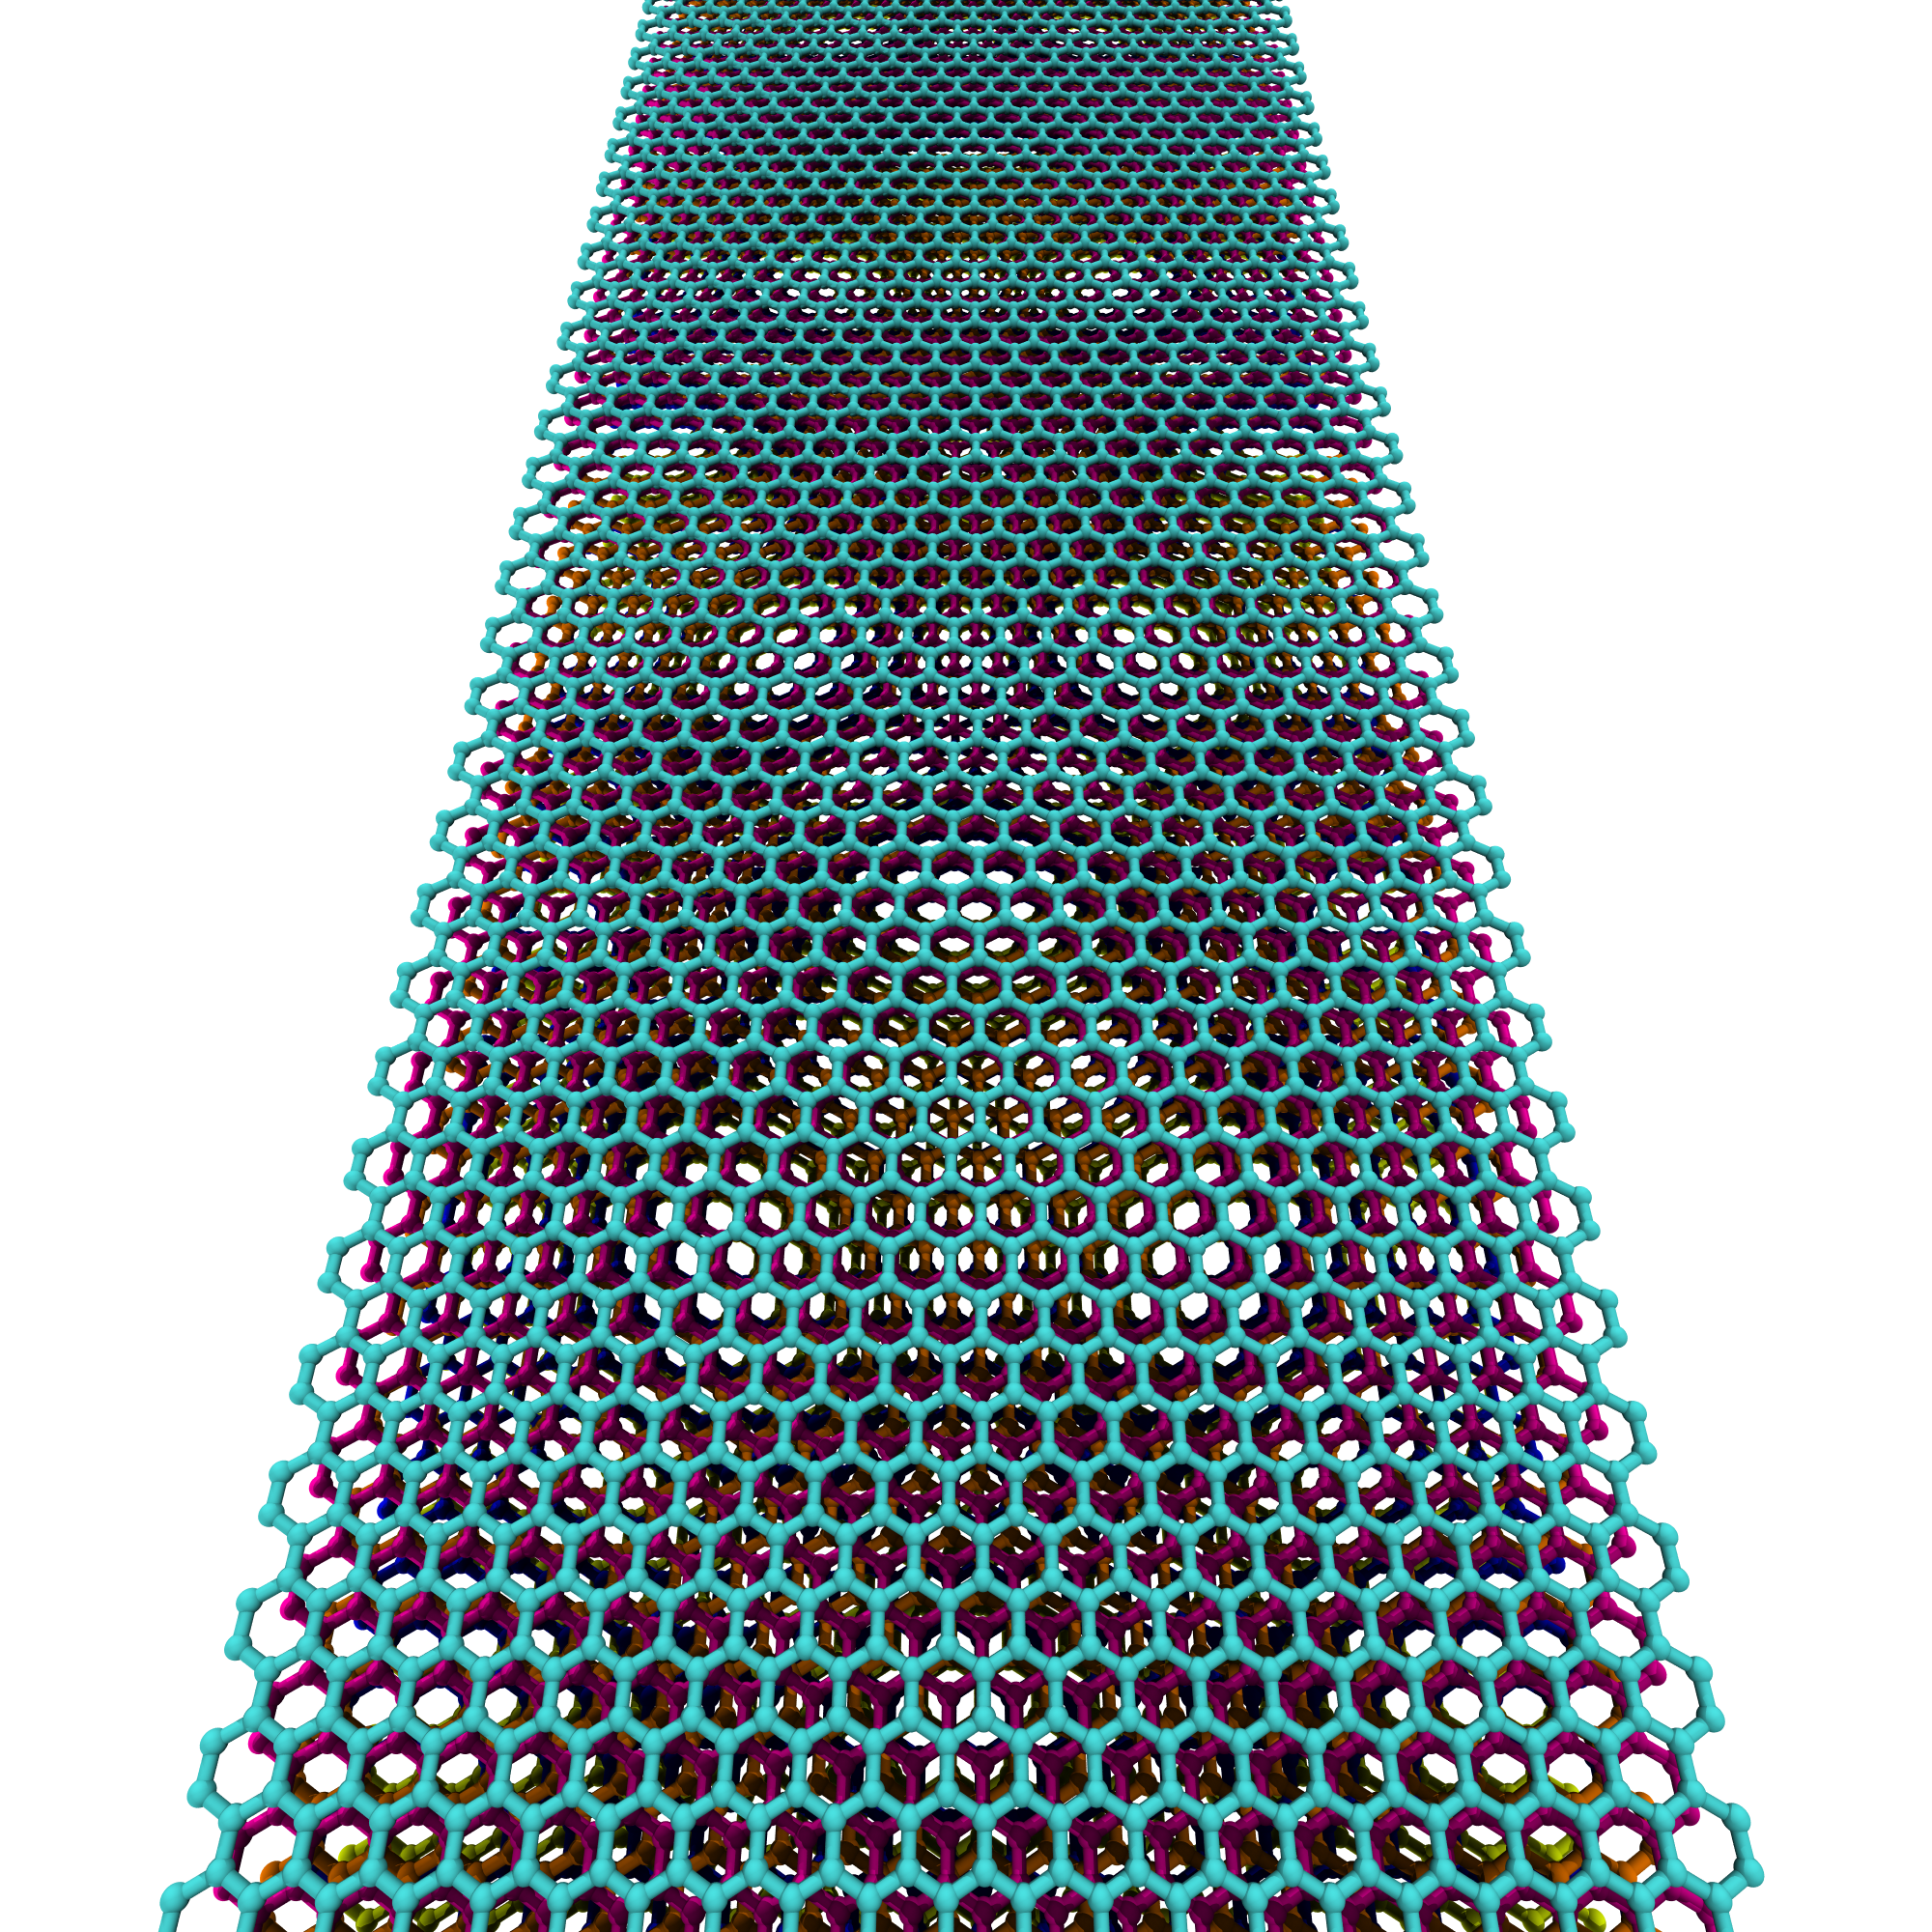 ../_images/25nmx5nm_5layer_AC_graphene.png